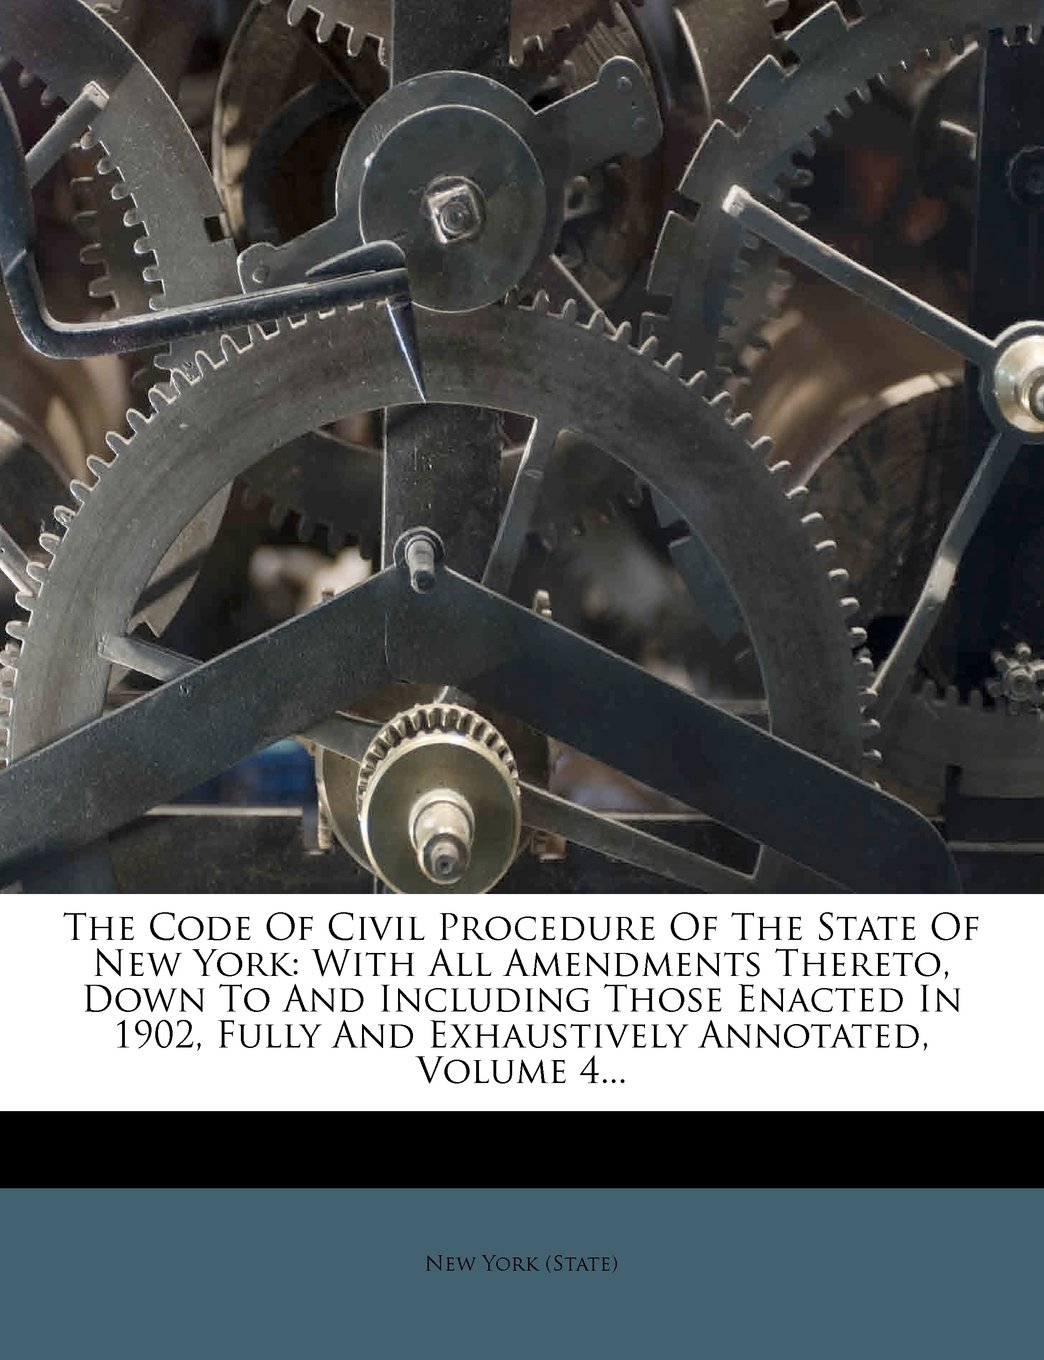 The Code Of Civil Procedure Of The State Of New York: With All Amendments Thereto, Down To And Including Those Enacted In 1902, Fully And Exhaustively Annotated, Volume 4... PDF